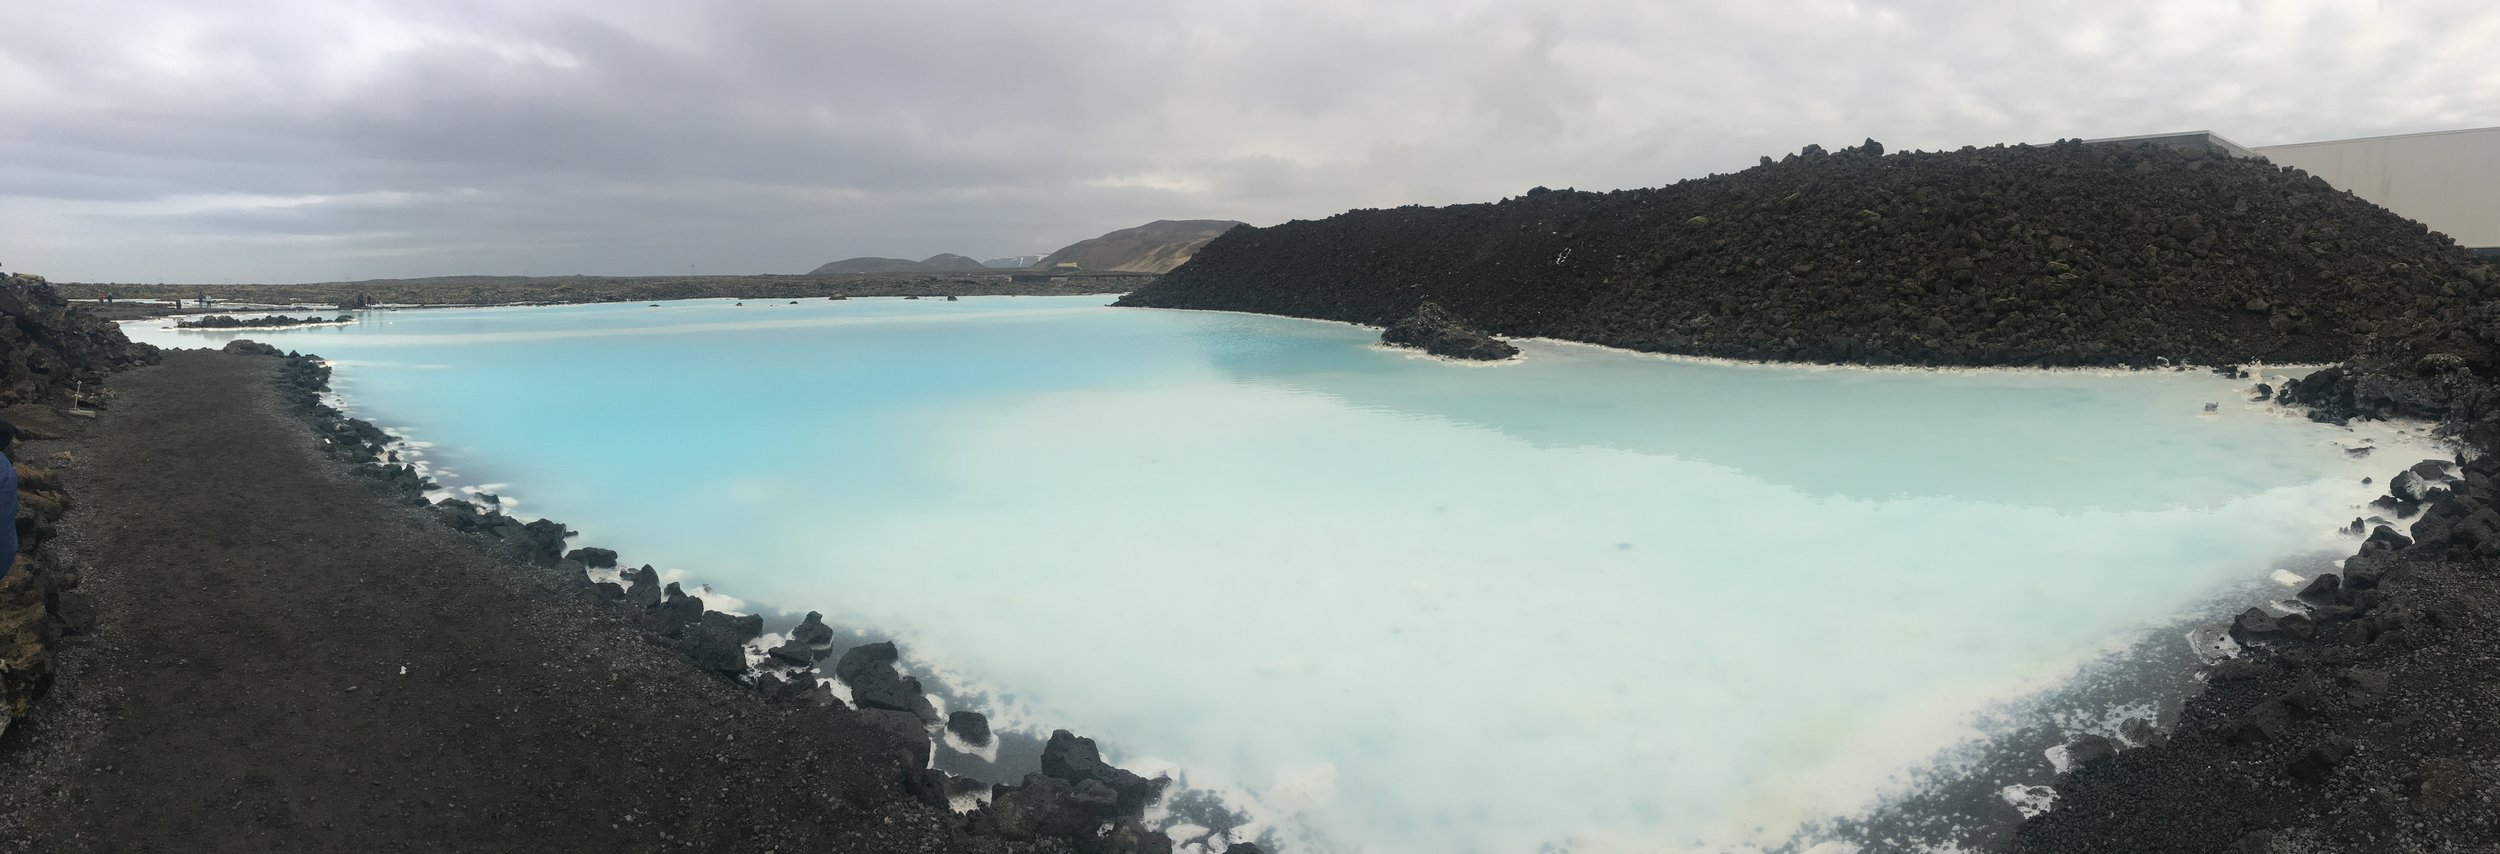 Blue Lagoon was well worth the trip - a must see!